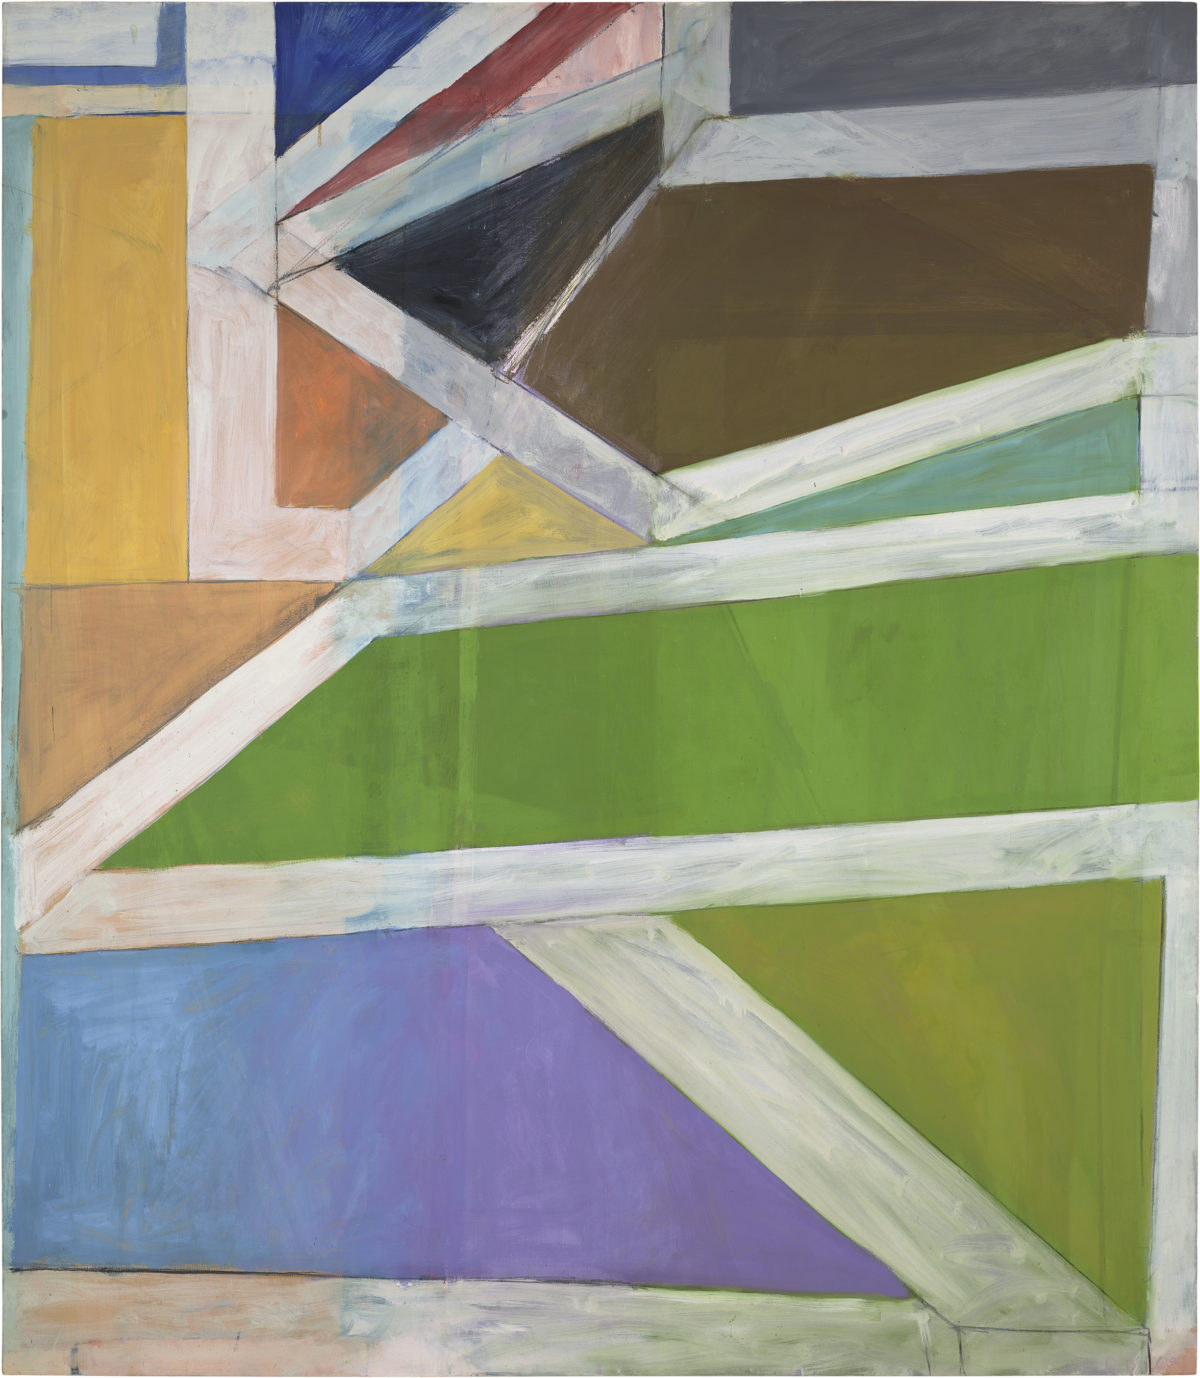 The Genius Next Door: What Legendary Painter Richard Diebenkorn Taught Artist Tony Berlant -